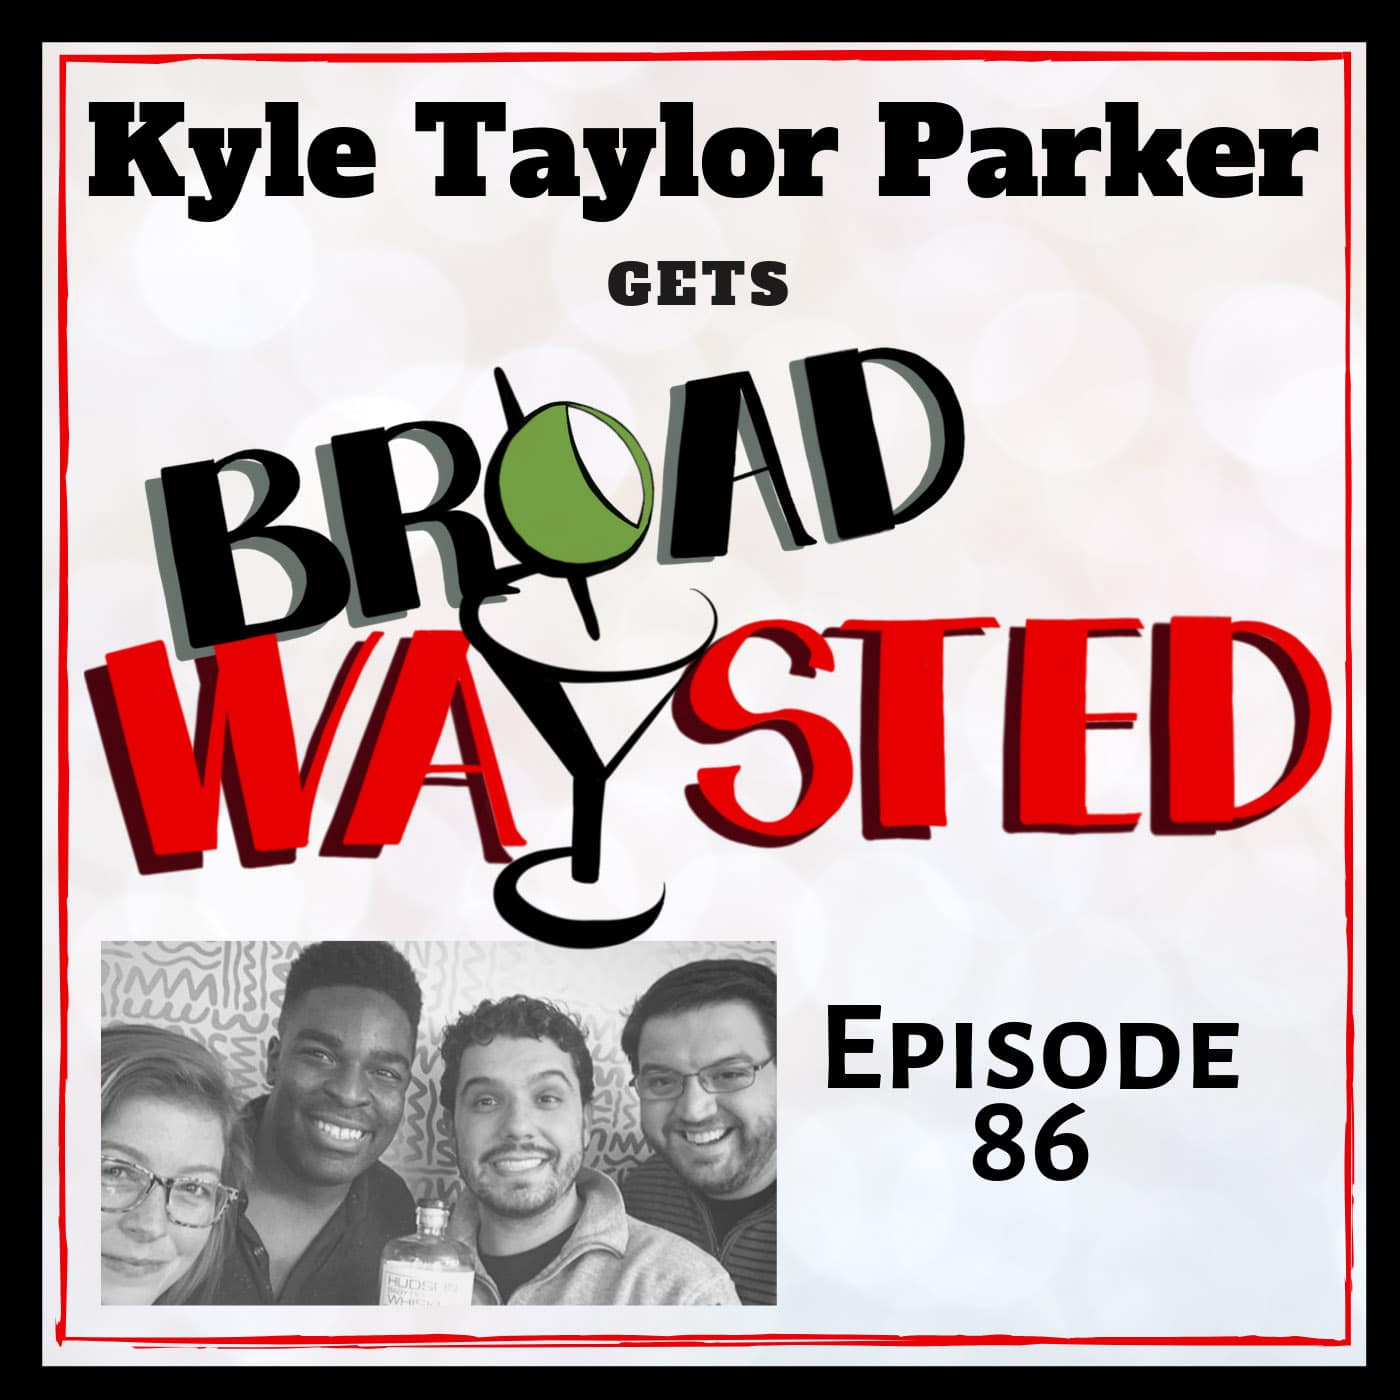 Broadwaysted Ep 86 Kyle Taylor Parker